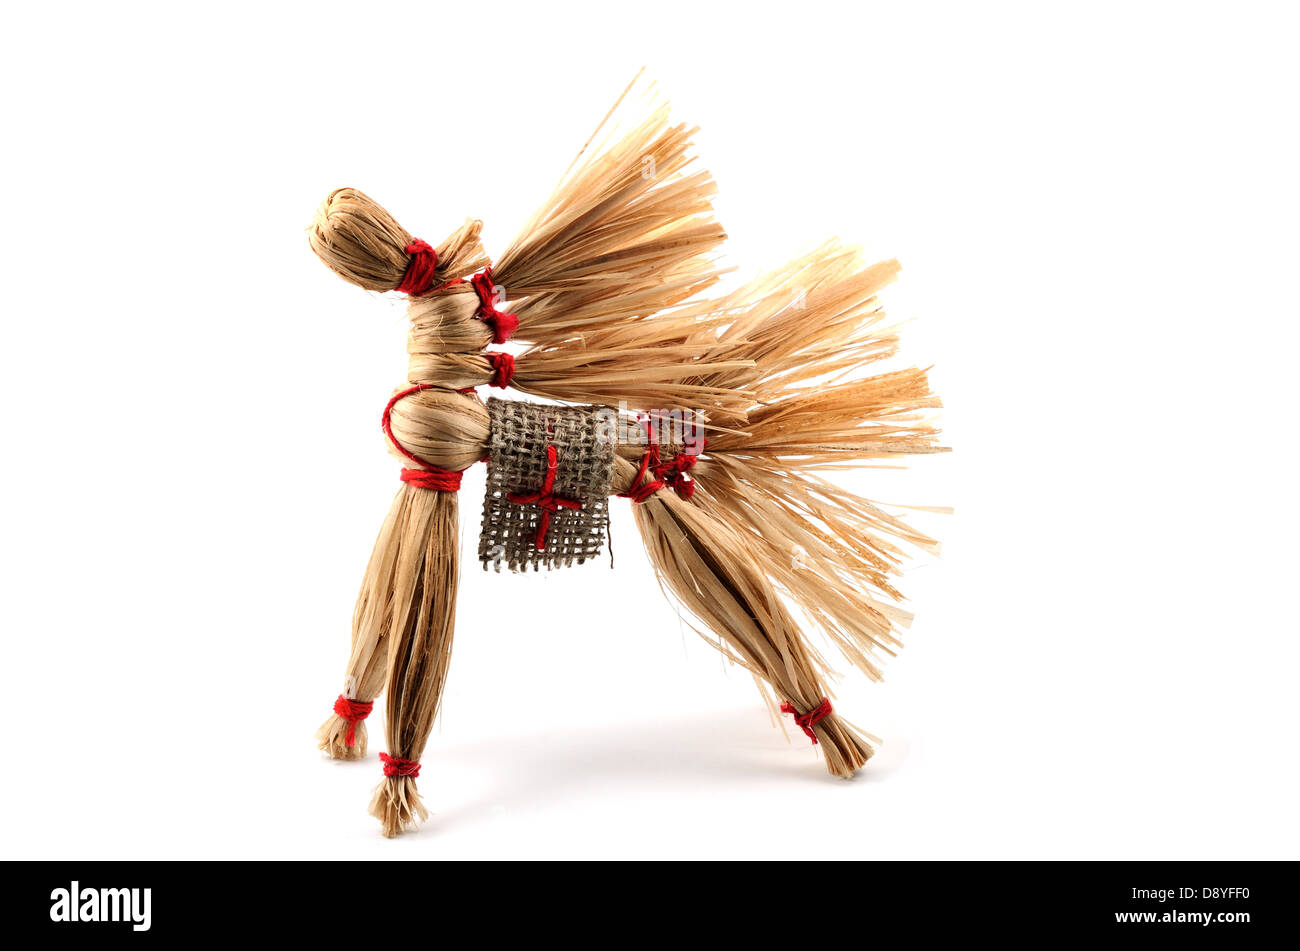 traditional Russian toy, horse of the bast over white - Stock Image